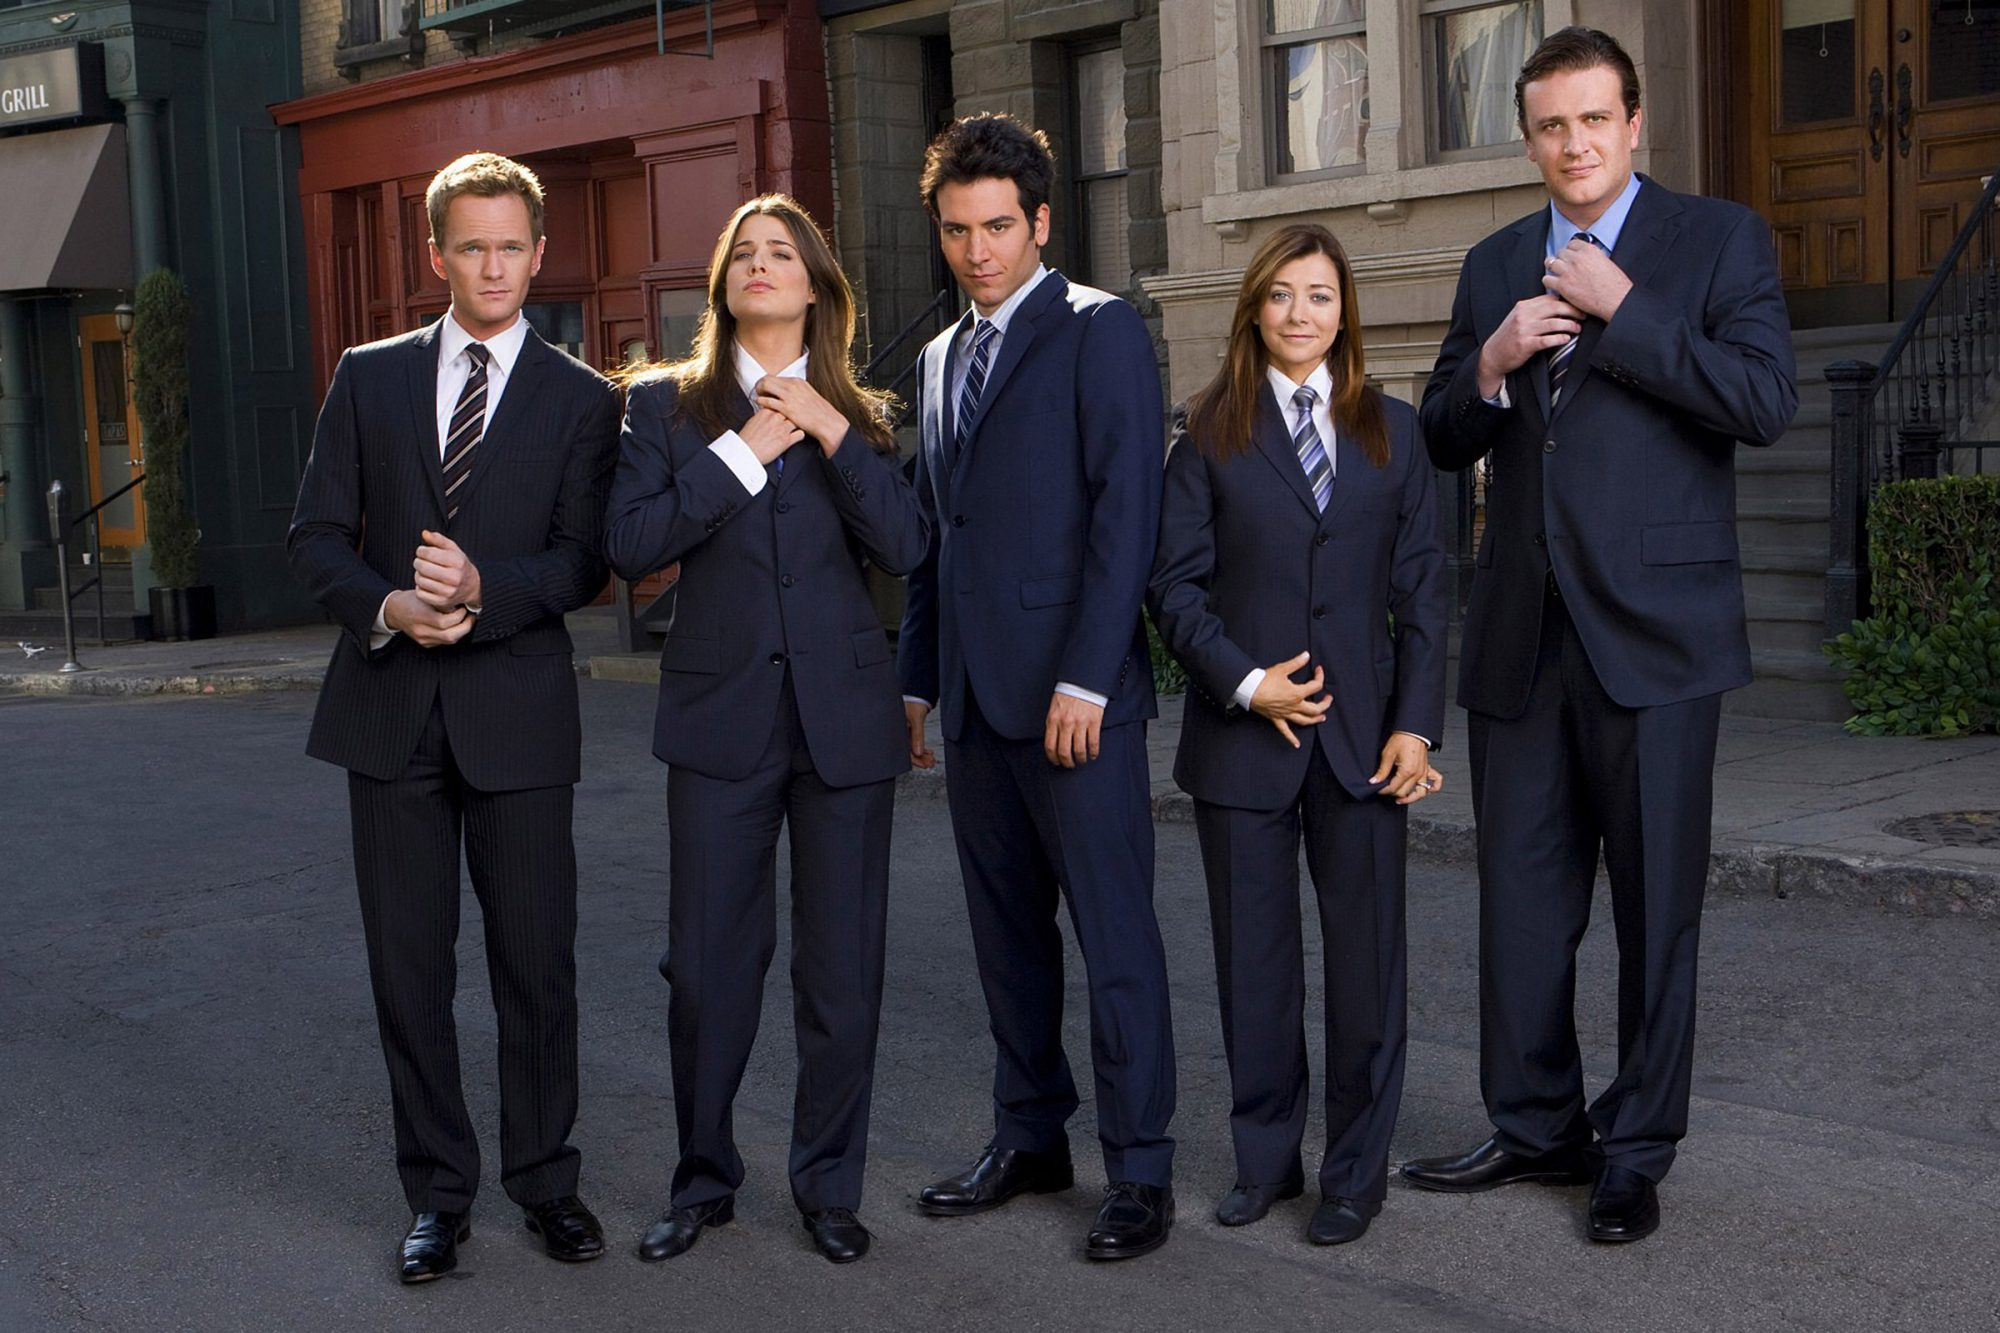 Barney (Neil Patrick Harris), Robin (Cobie Smulders), Ted (Josh Radnor), Lily (Alyson Hannigan), and Marshall (Jason Segel) of How I Met Your Mother